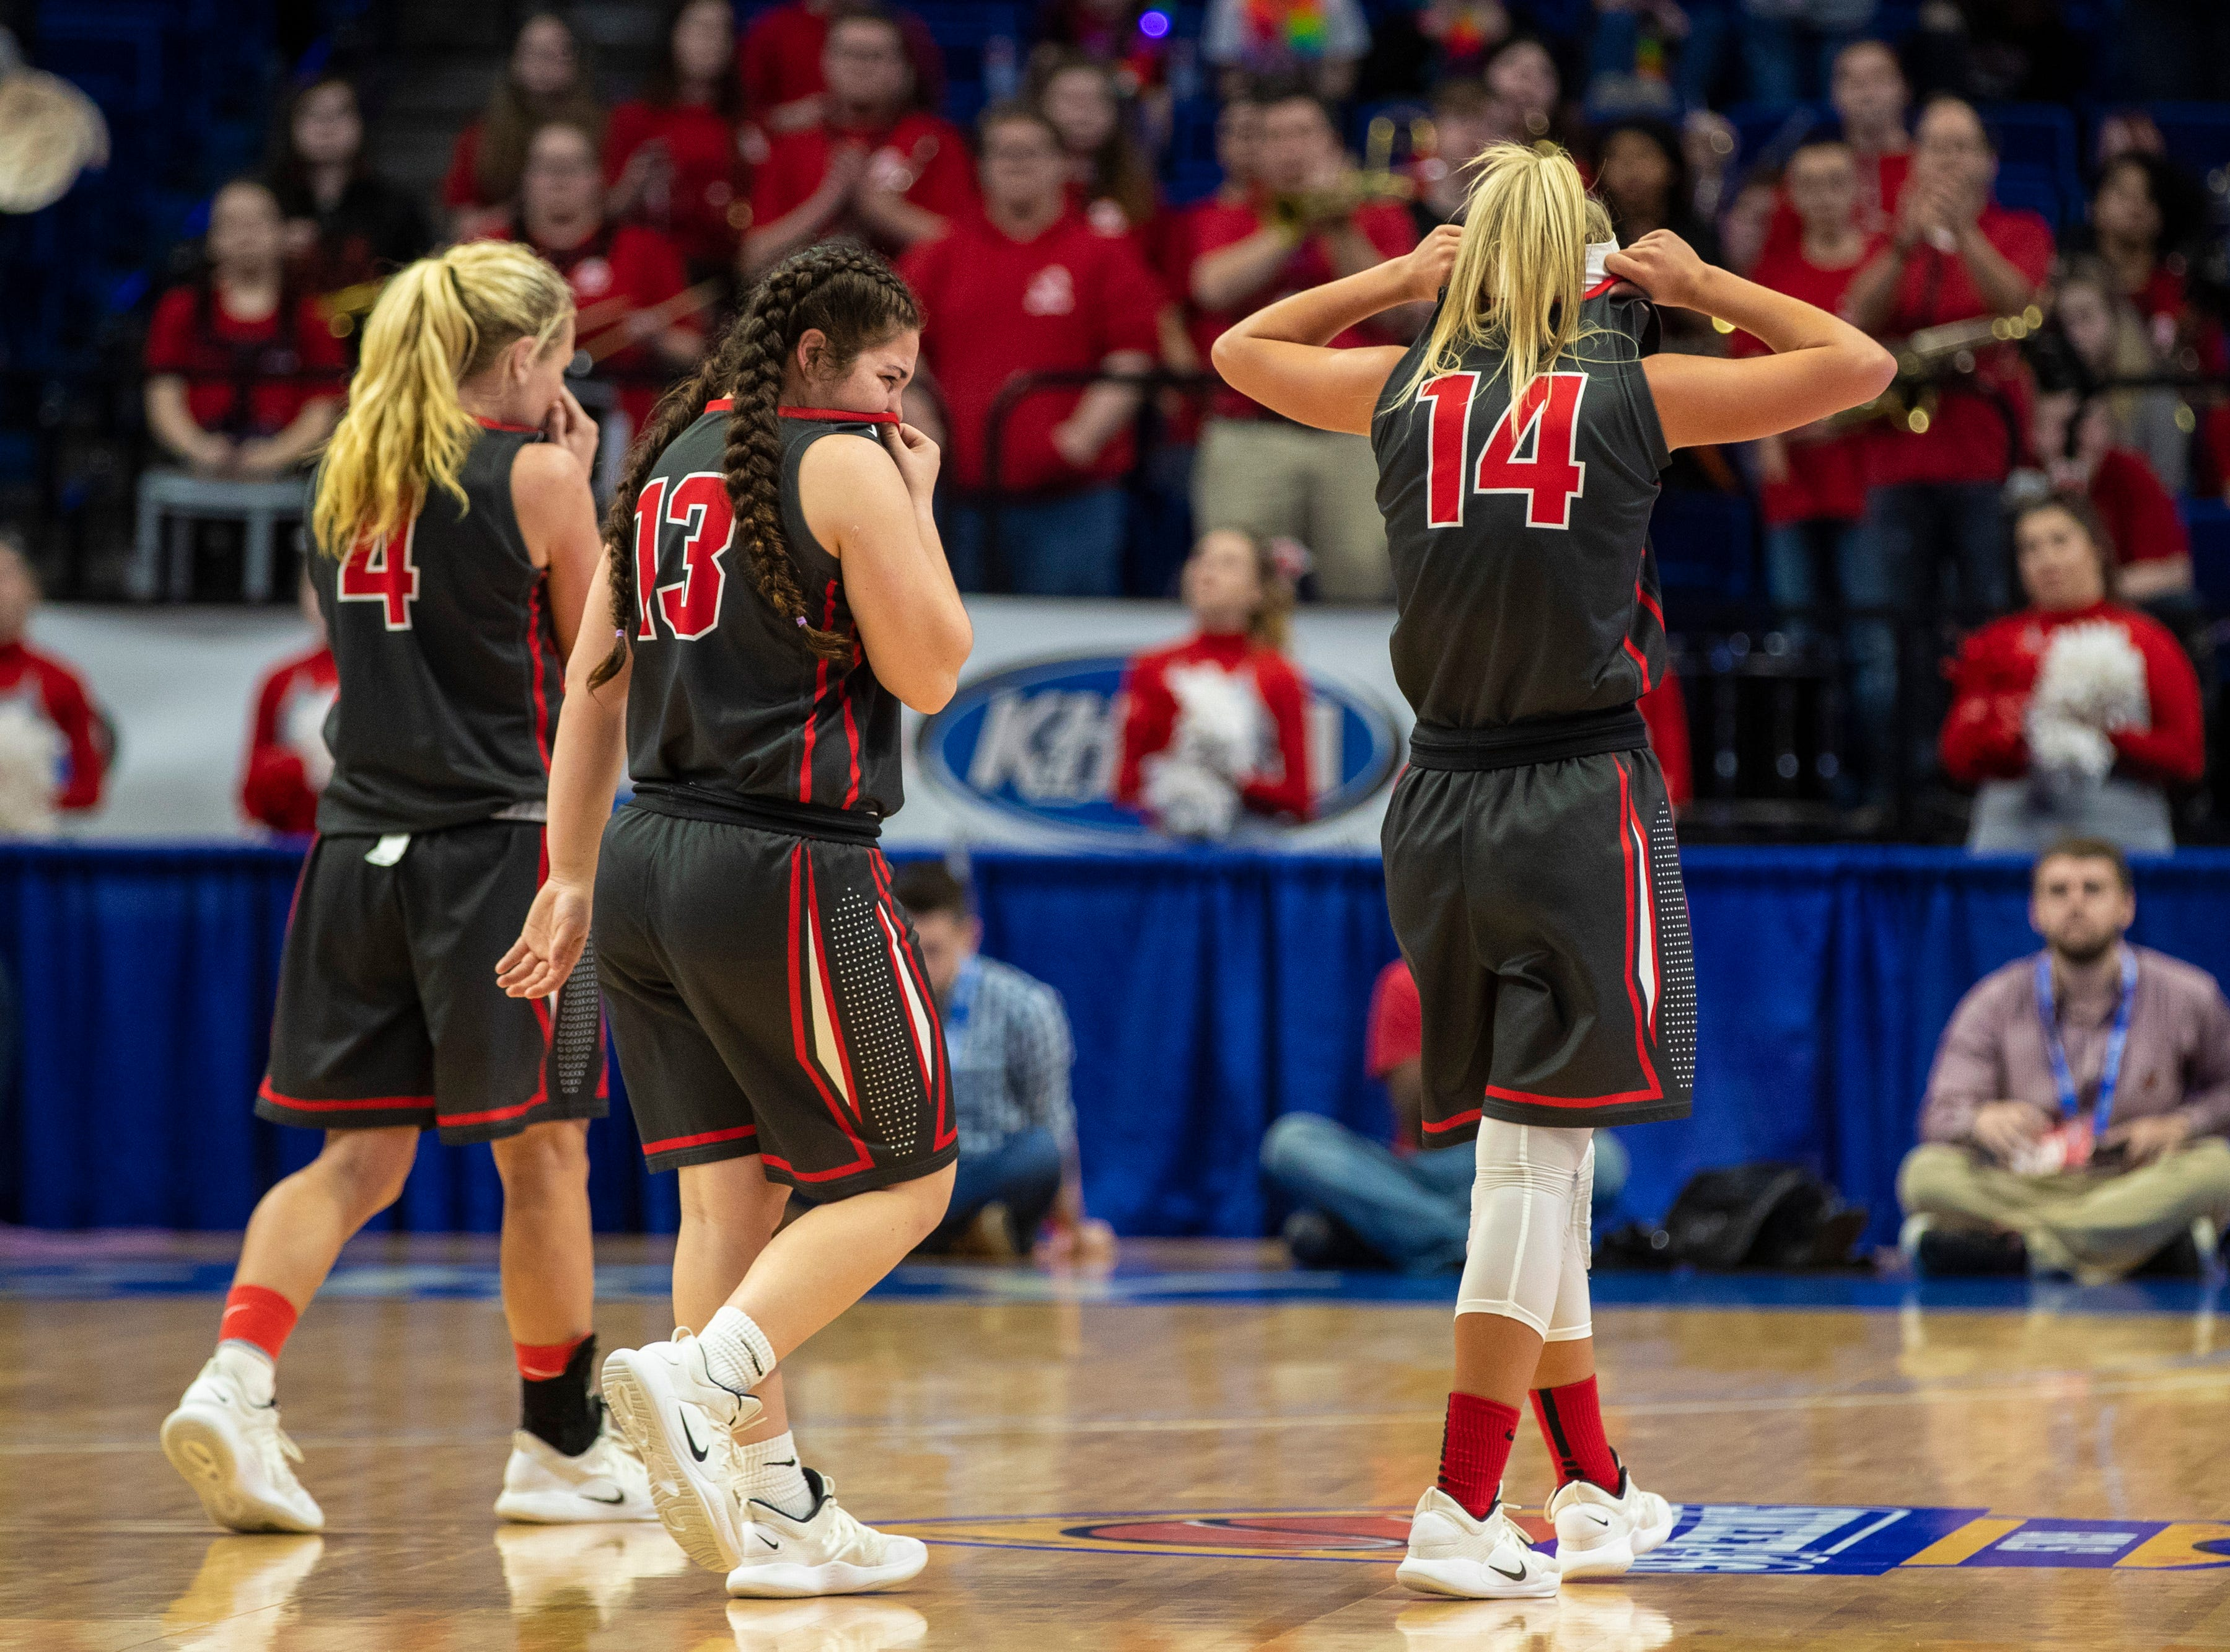 Boyd County's Savannah Wheeler, from left, Graci Opell, and Harley Painter exit the floor as they react to their imminent defeat to Louisville Male in the KHSAA state basketball tournament in Rupp Arena. Male eliminated Boyd County 74-56. March 14, 2019